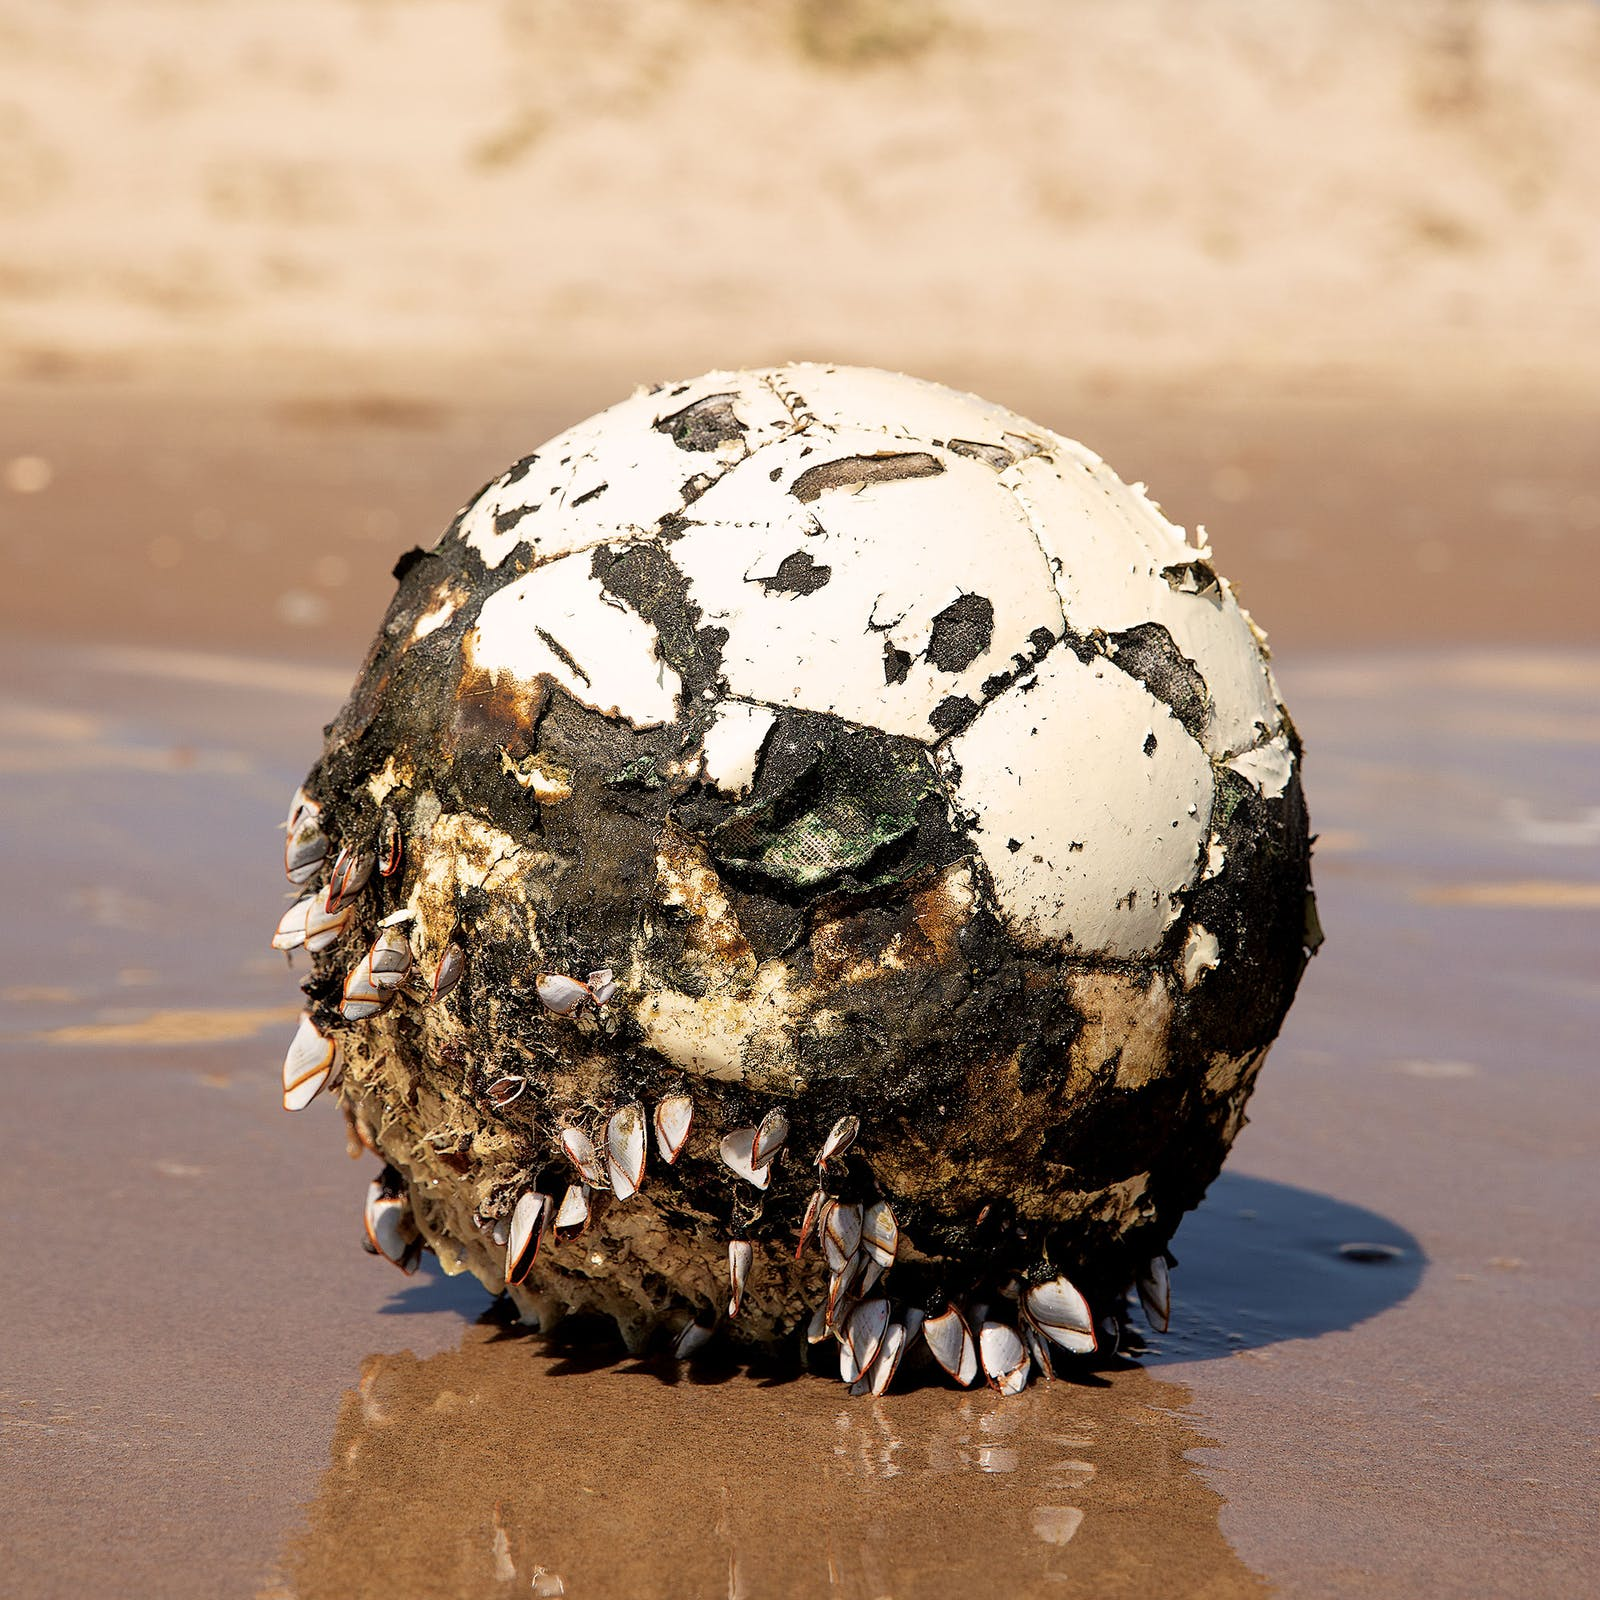 A mussel-encrusted soccer ball near mile marker 42.